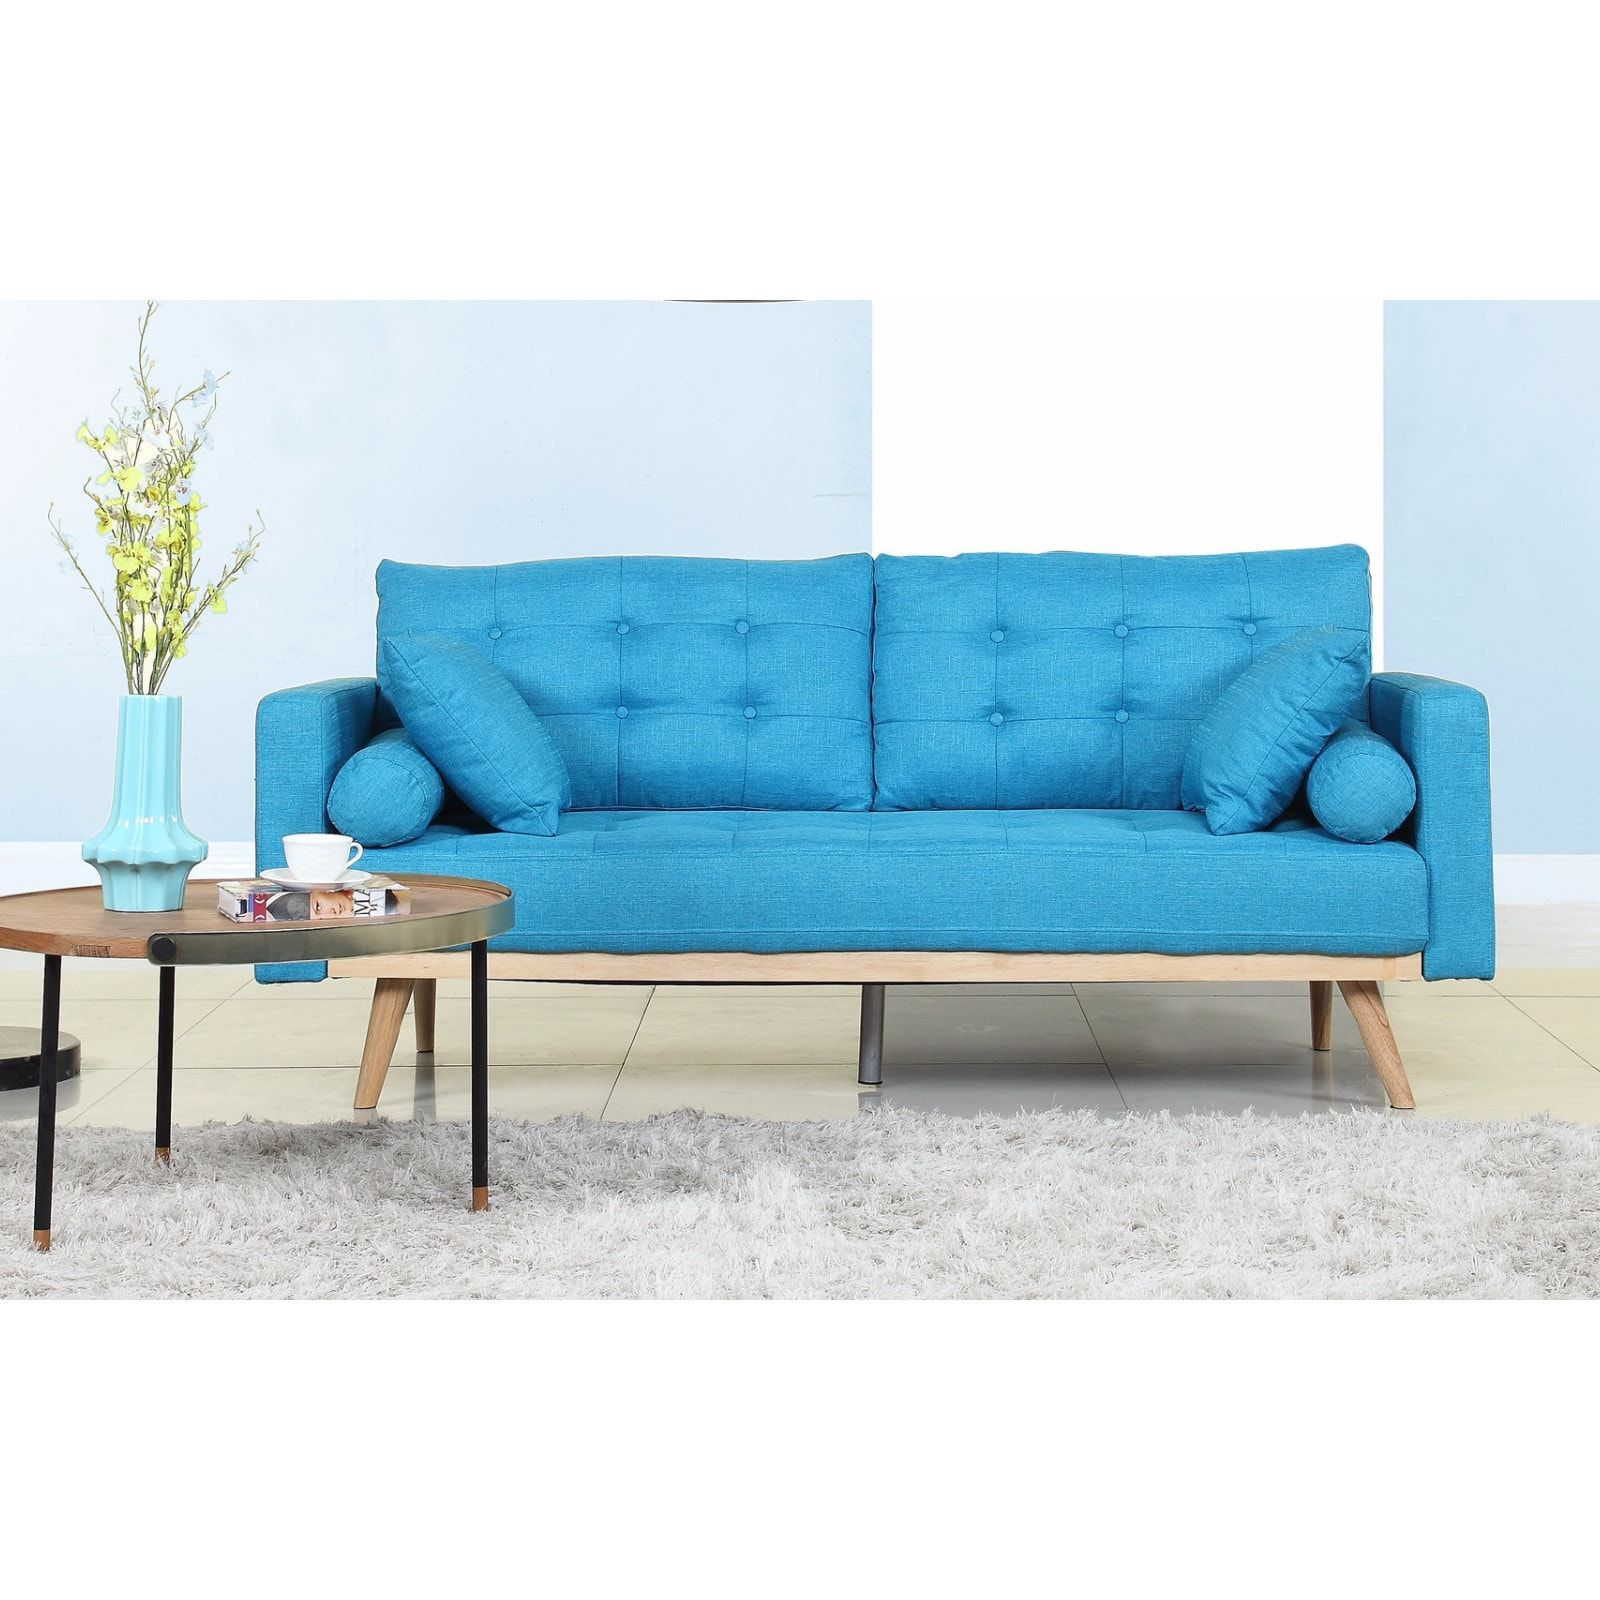 Incroyable Madison Tufted Linen Mid Century Modern Sofa (Light Blue) (Fabric)